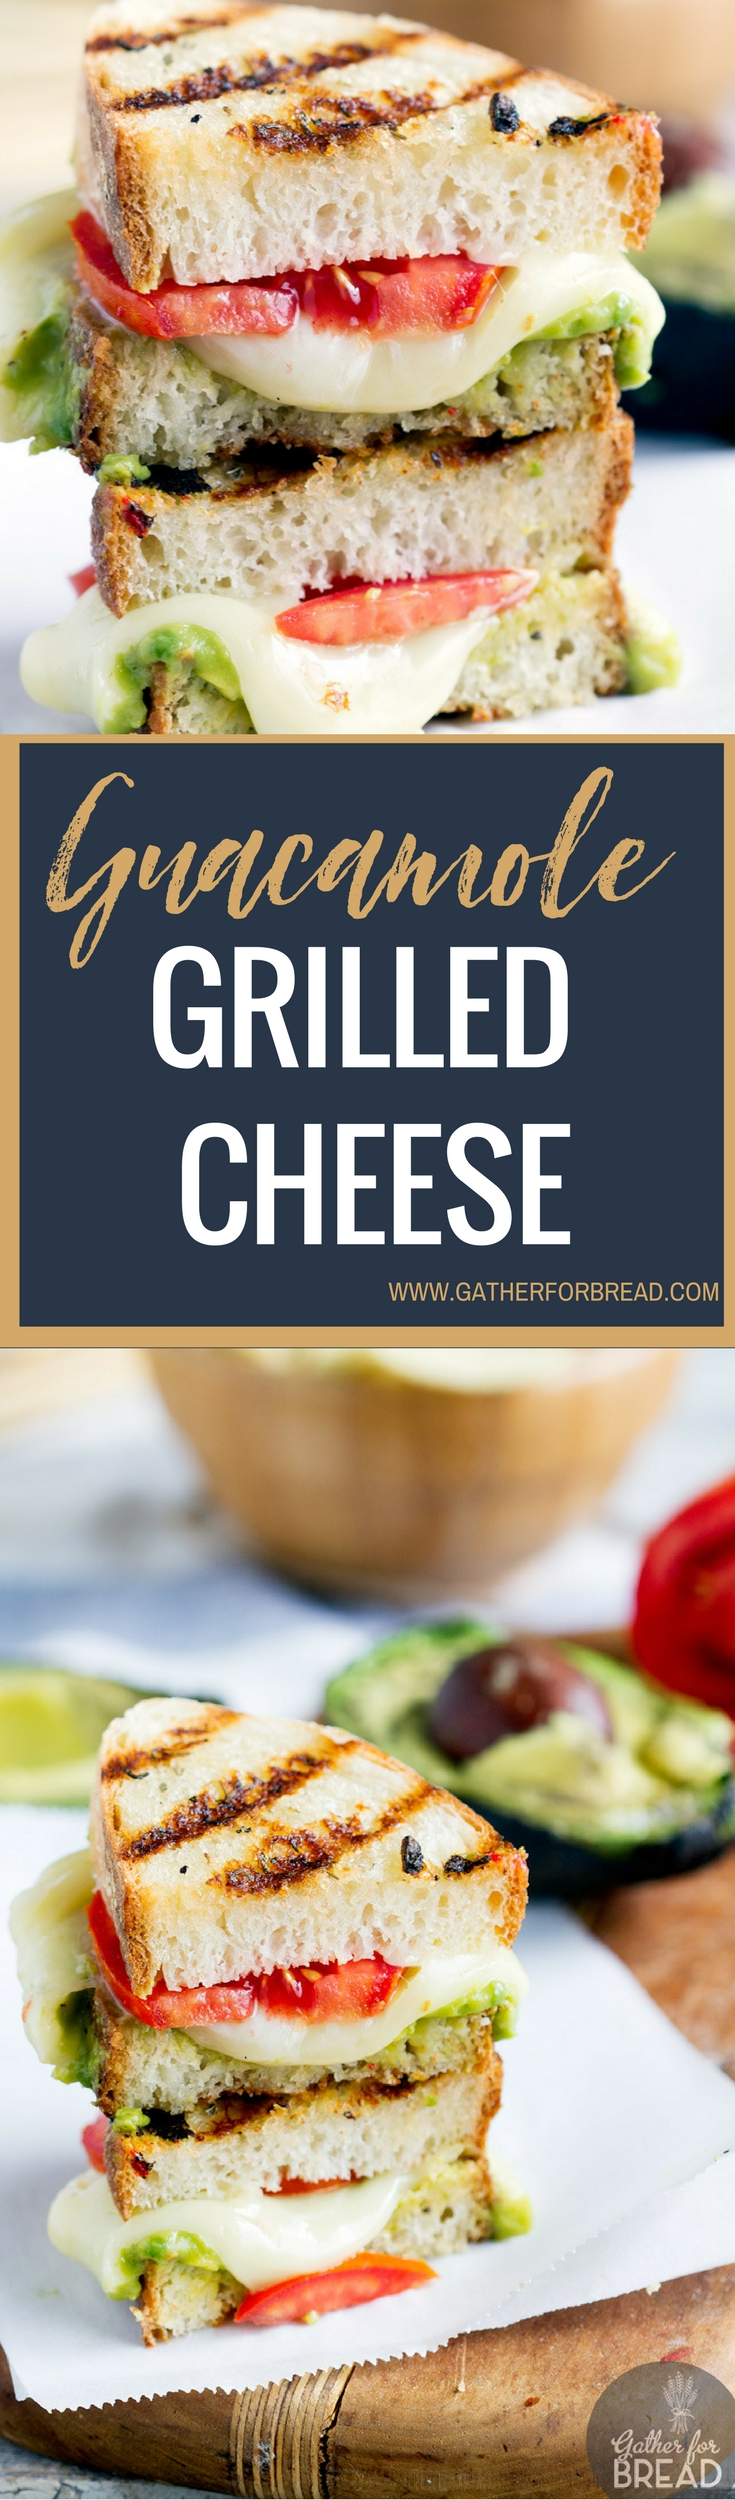 Guacamole Grilled Cheese - Grilled cheese sandwich stuffed with delicious cheese and the fresh taste of avocado and tomato. ONE of my FAVORITE sandwiches!